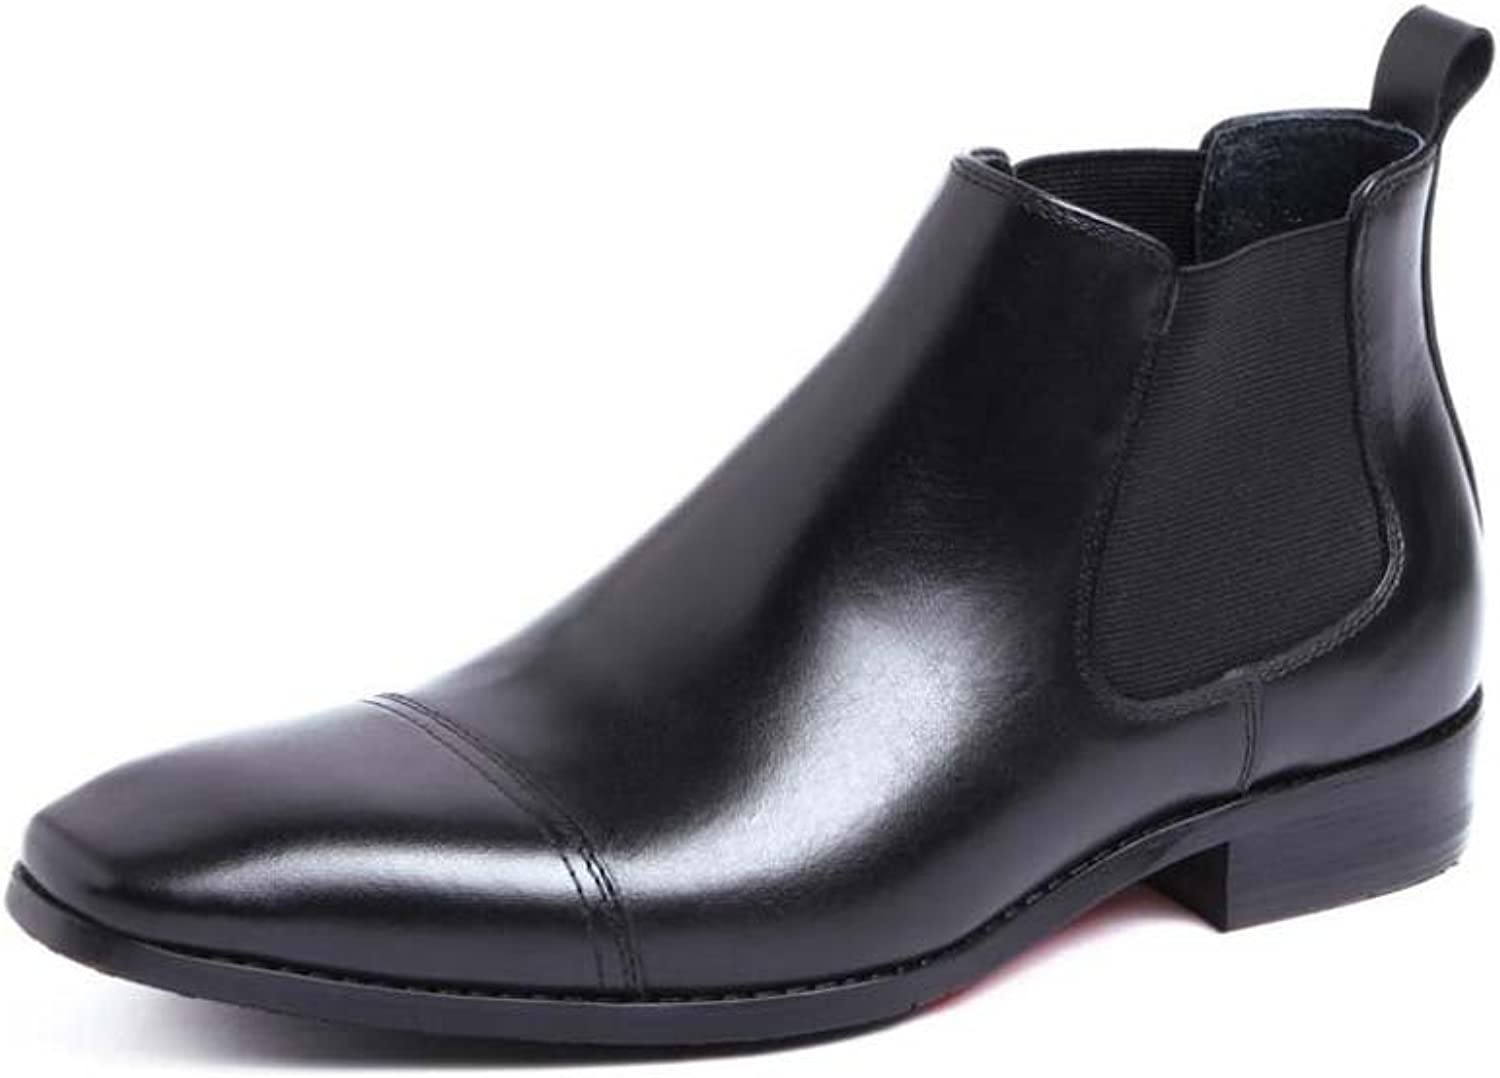 Men's Ankle Boots shoes Cowhide to Create Business Dress shoes Atmosphere Has 37 Yards